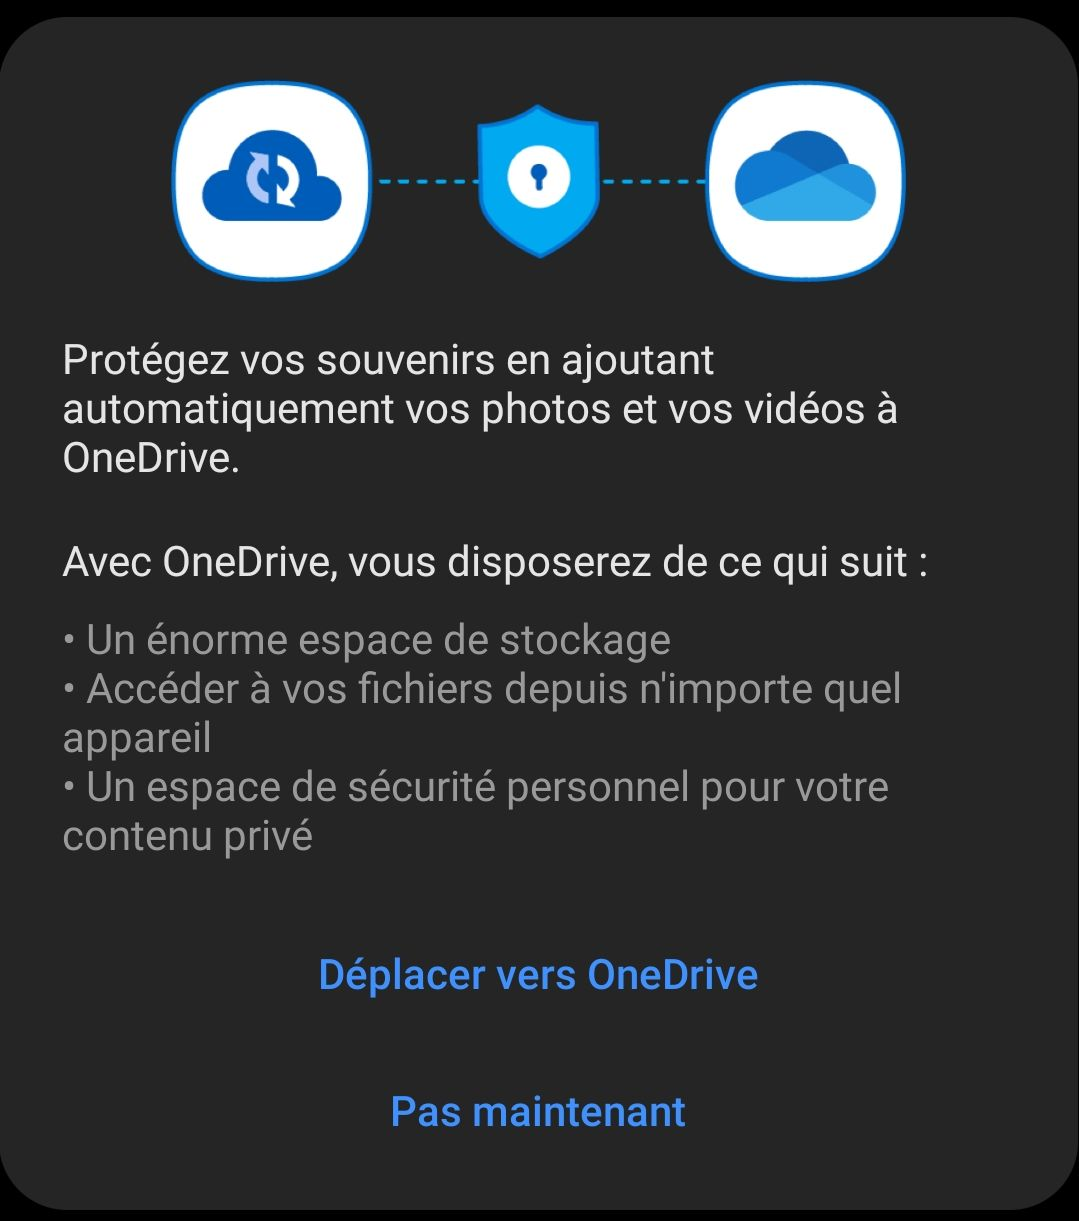 OneDrive recently replaced Samsung Cloud for storing photos online.